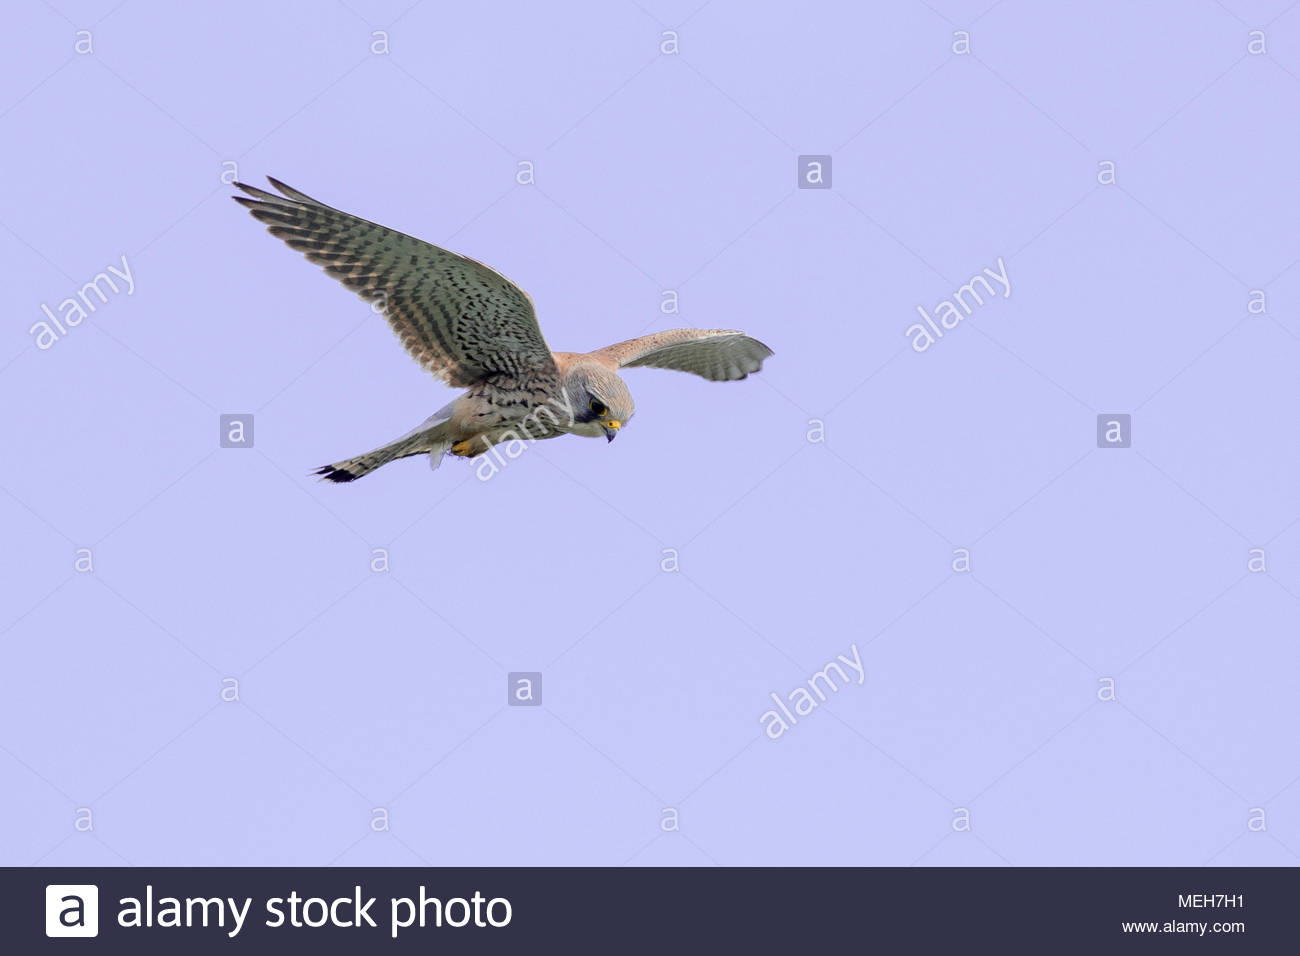 A kestrel (UK) hovering looking for prey. - Stock Image